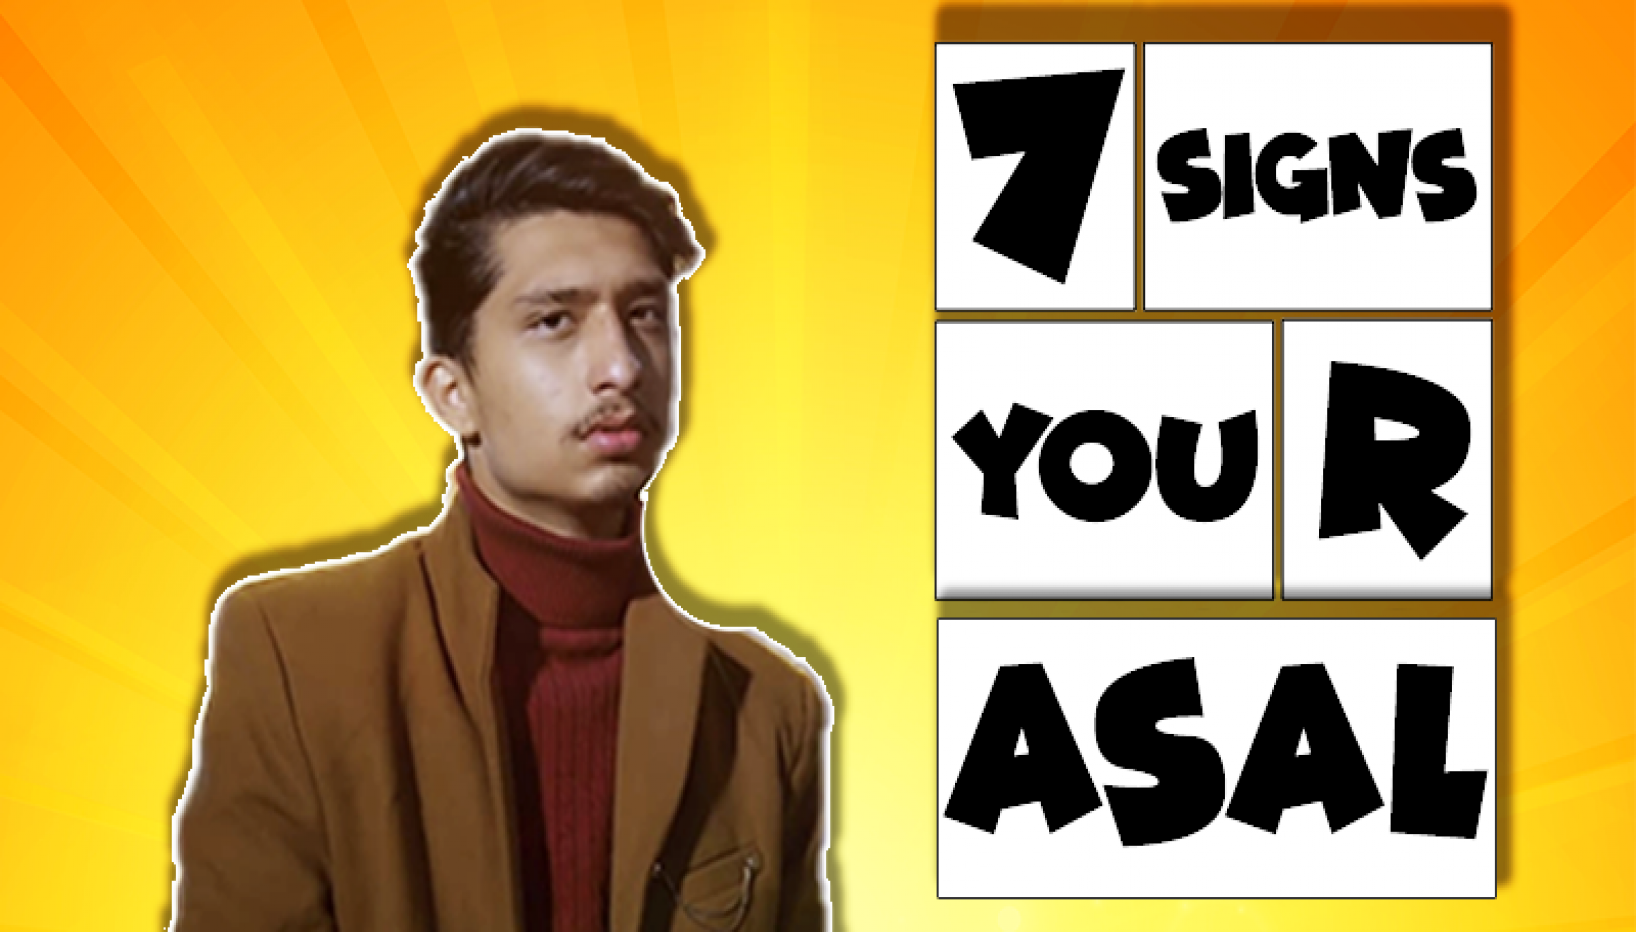 7 Subtle Signs You're Asal From Blind Date